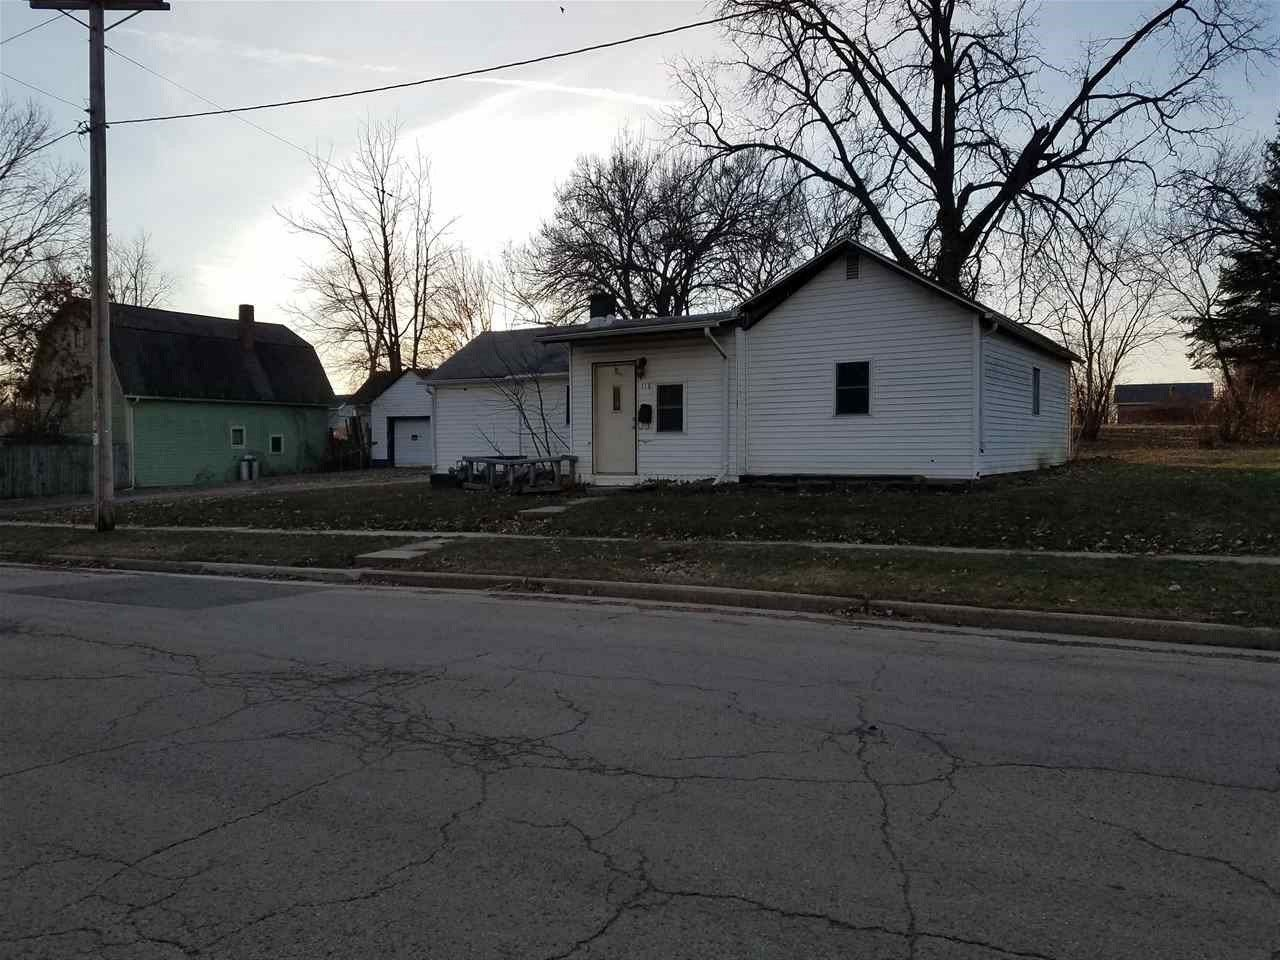 118 N Commercial St, Waupun, WI 53963 - #: 1874027